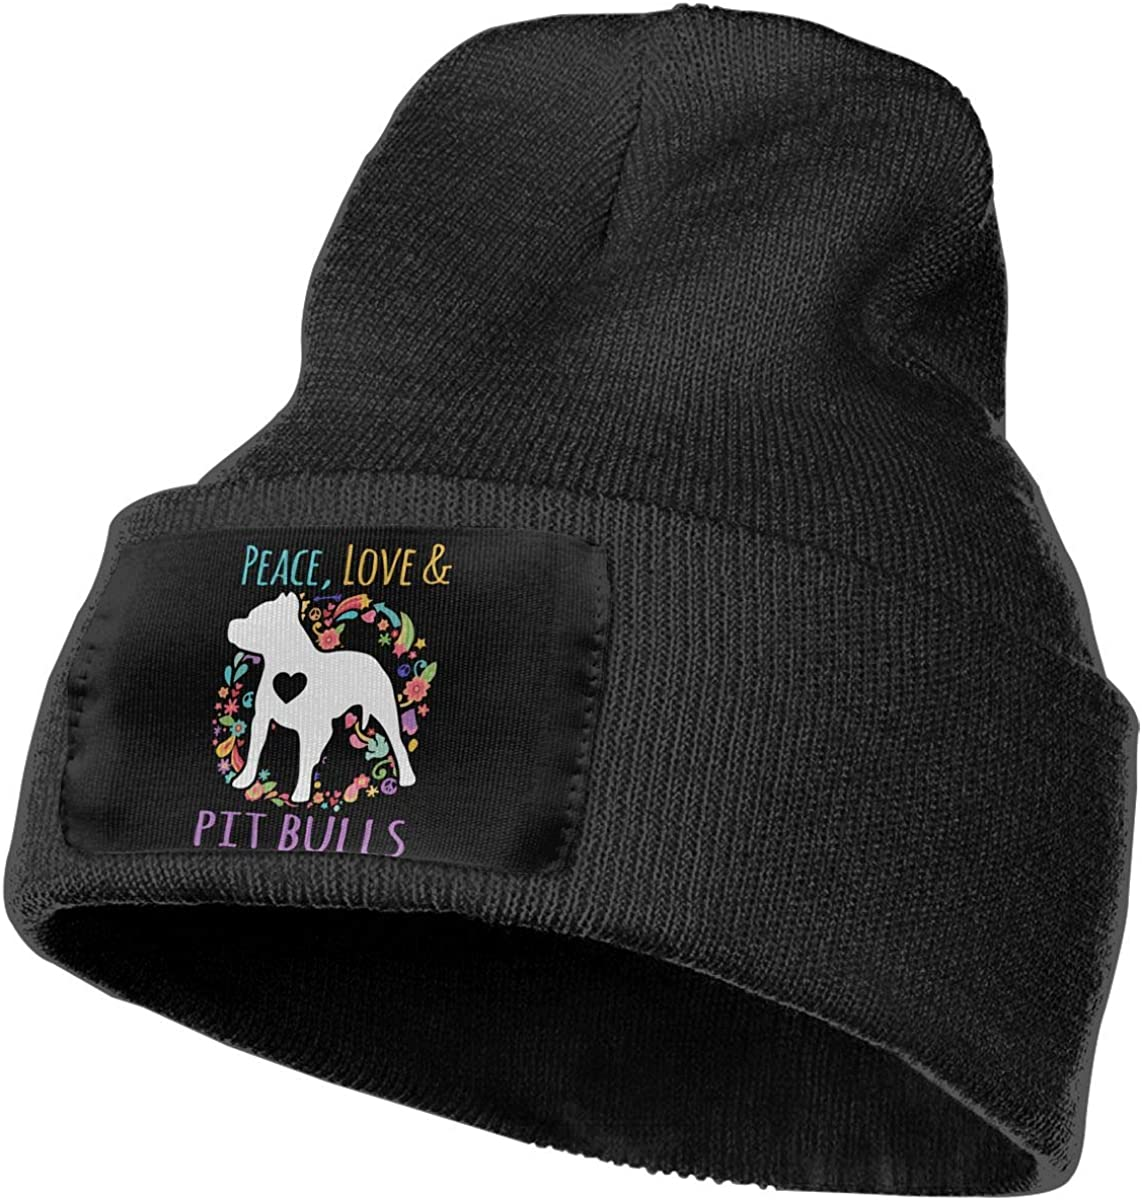 Peace Love and Pit Bulls Warm Skull Cap Mens Womens 100/% Acrylic Knitted Hat Cap